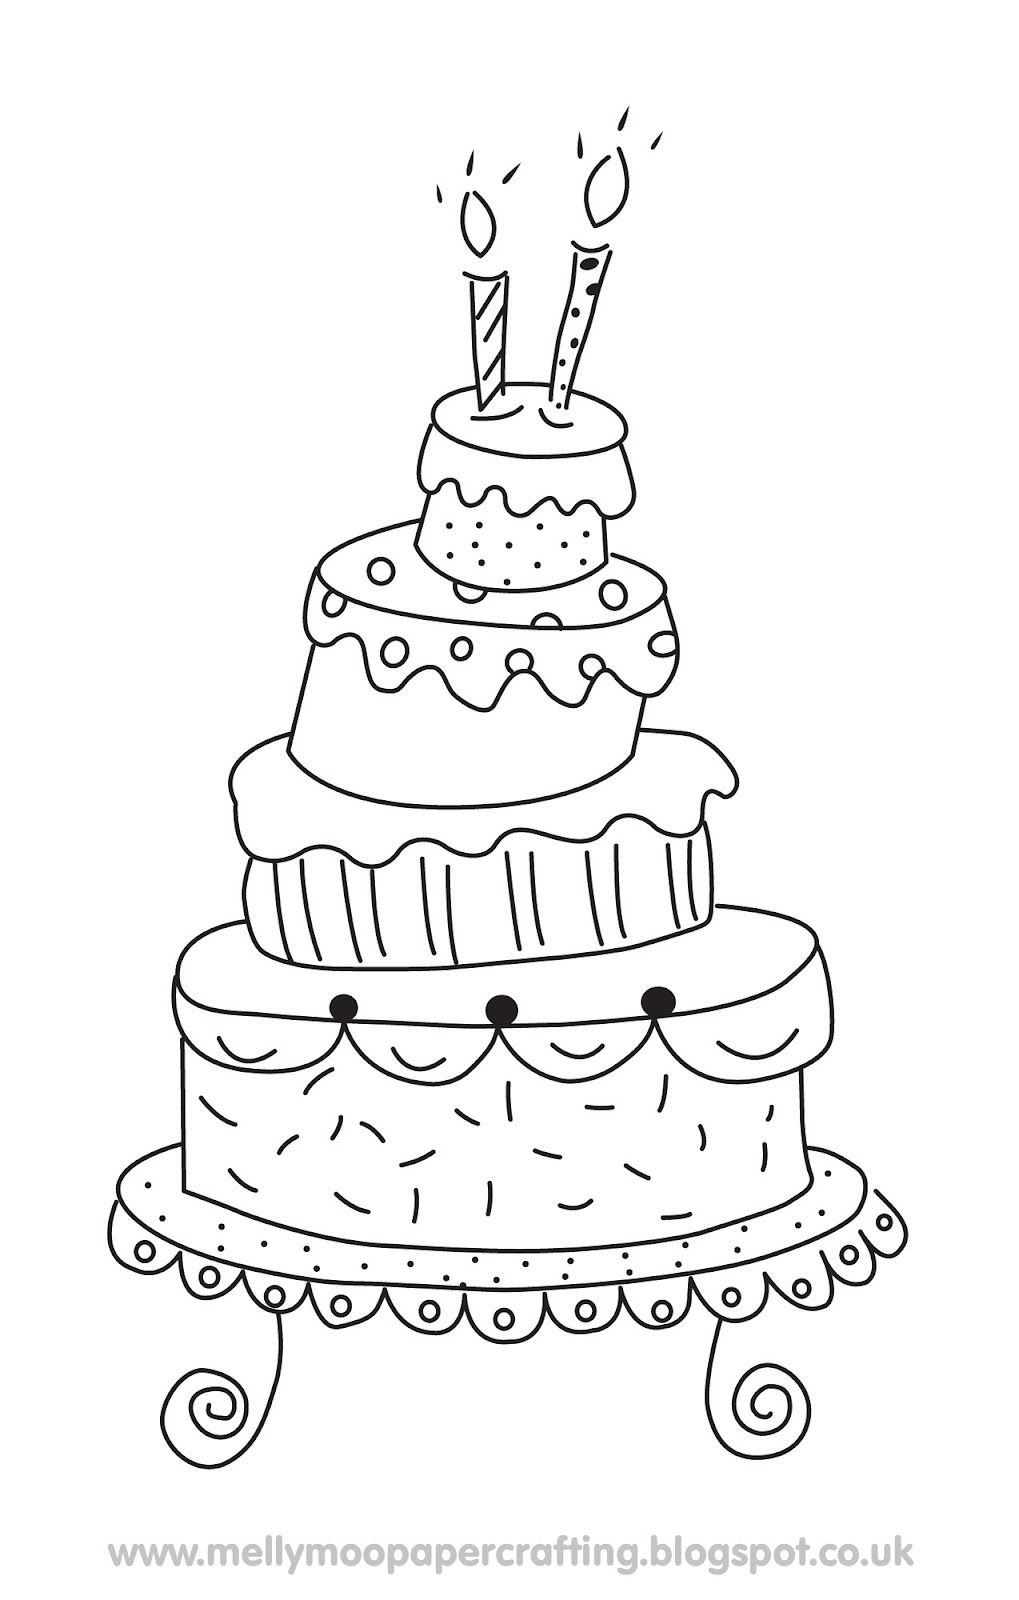 Remarkable Mellymoo Papercrafting Free Image Download Cake Drawing Birthday Cards Printable Trancafe Filternl